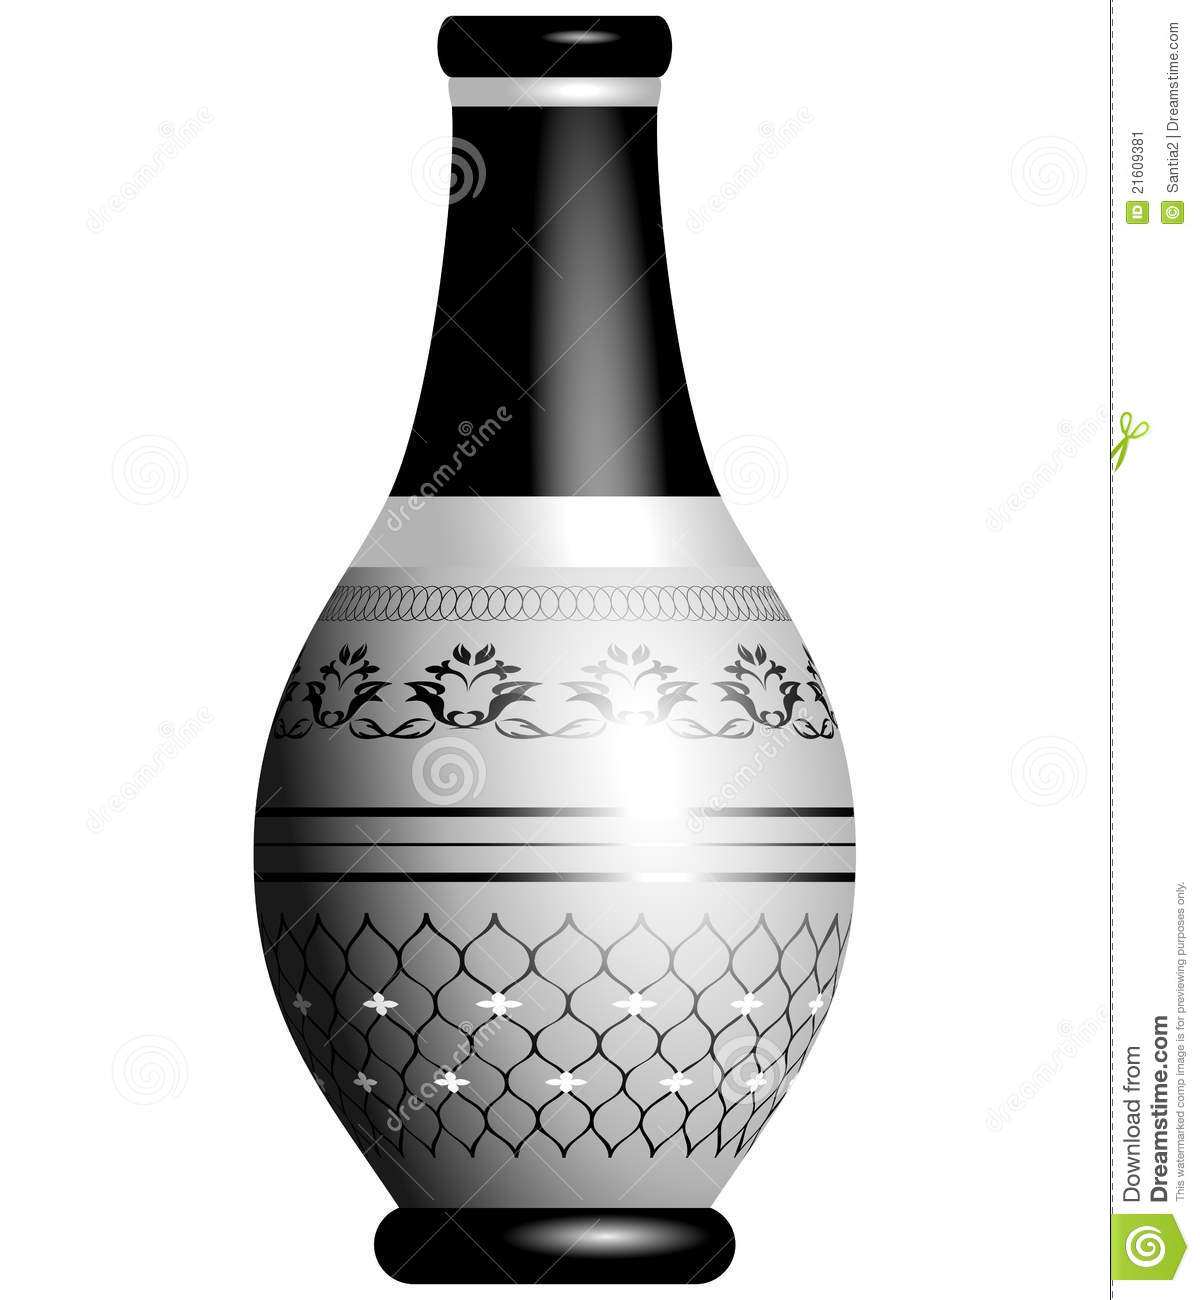 black and silver ornate vase d stock image  image  - black isolated ornate silver vase white